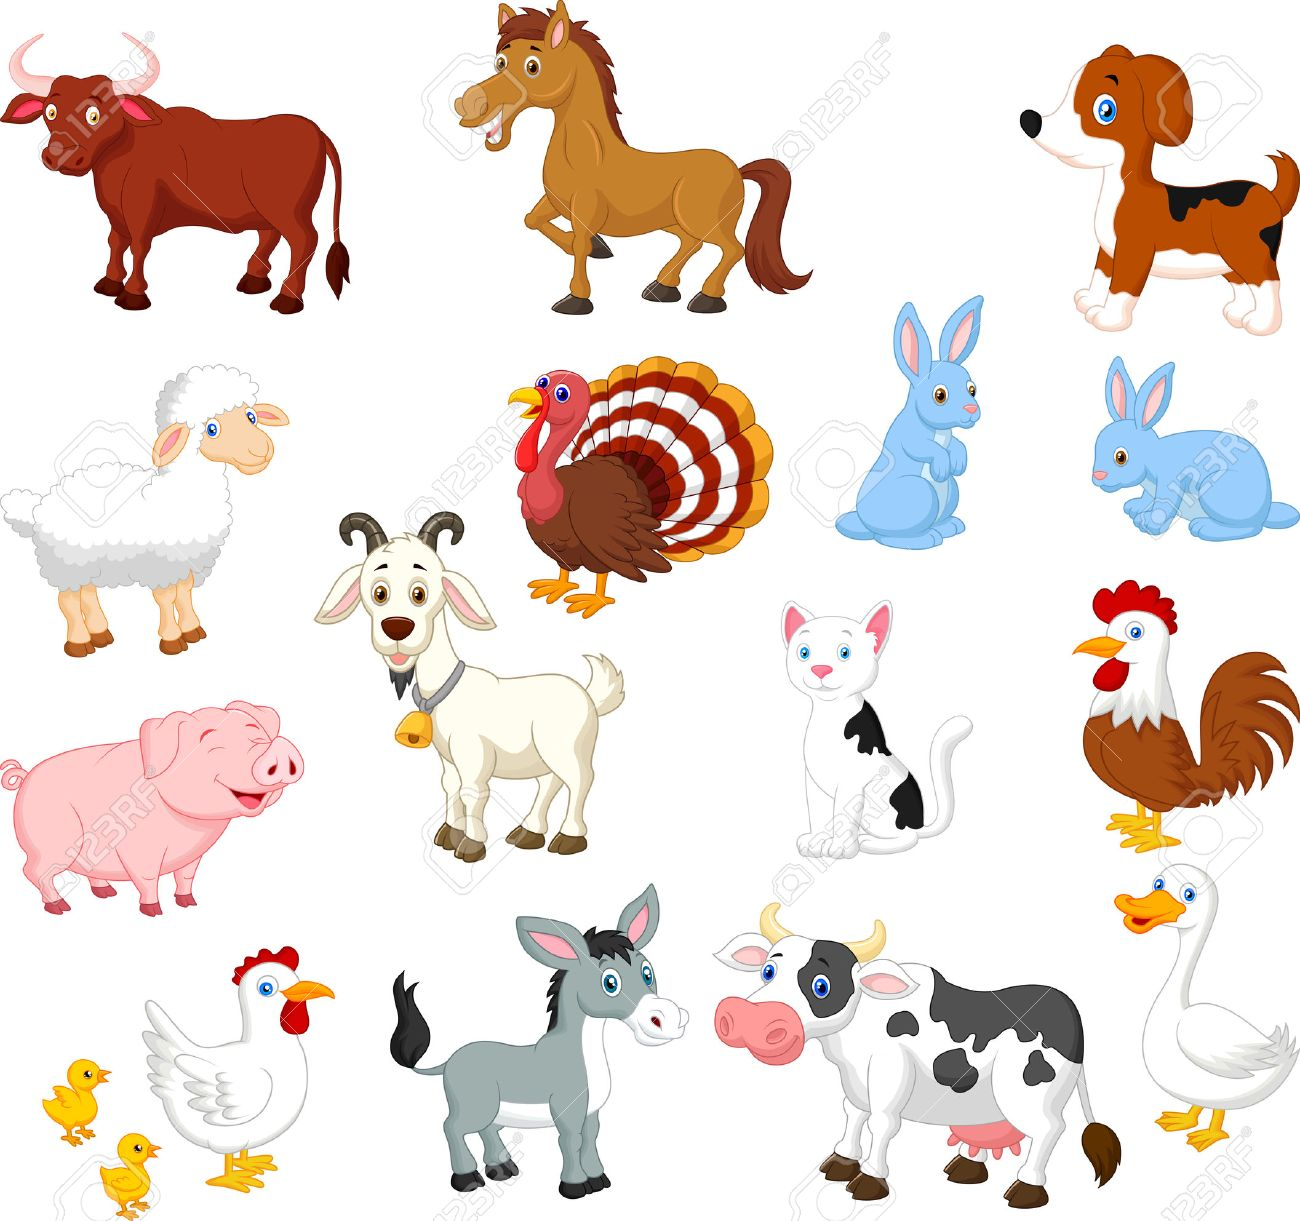 farm animal collection set royalty free cliparts vectors and